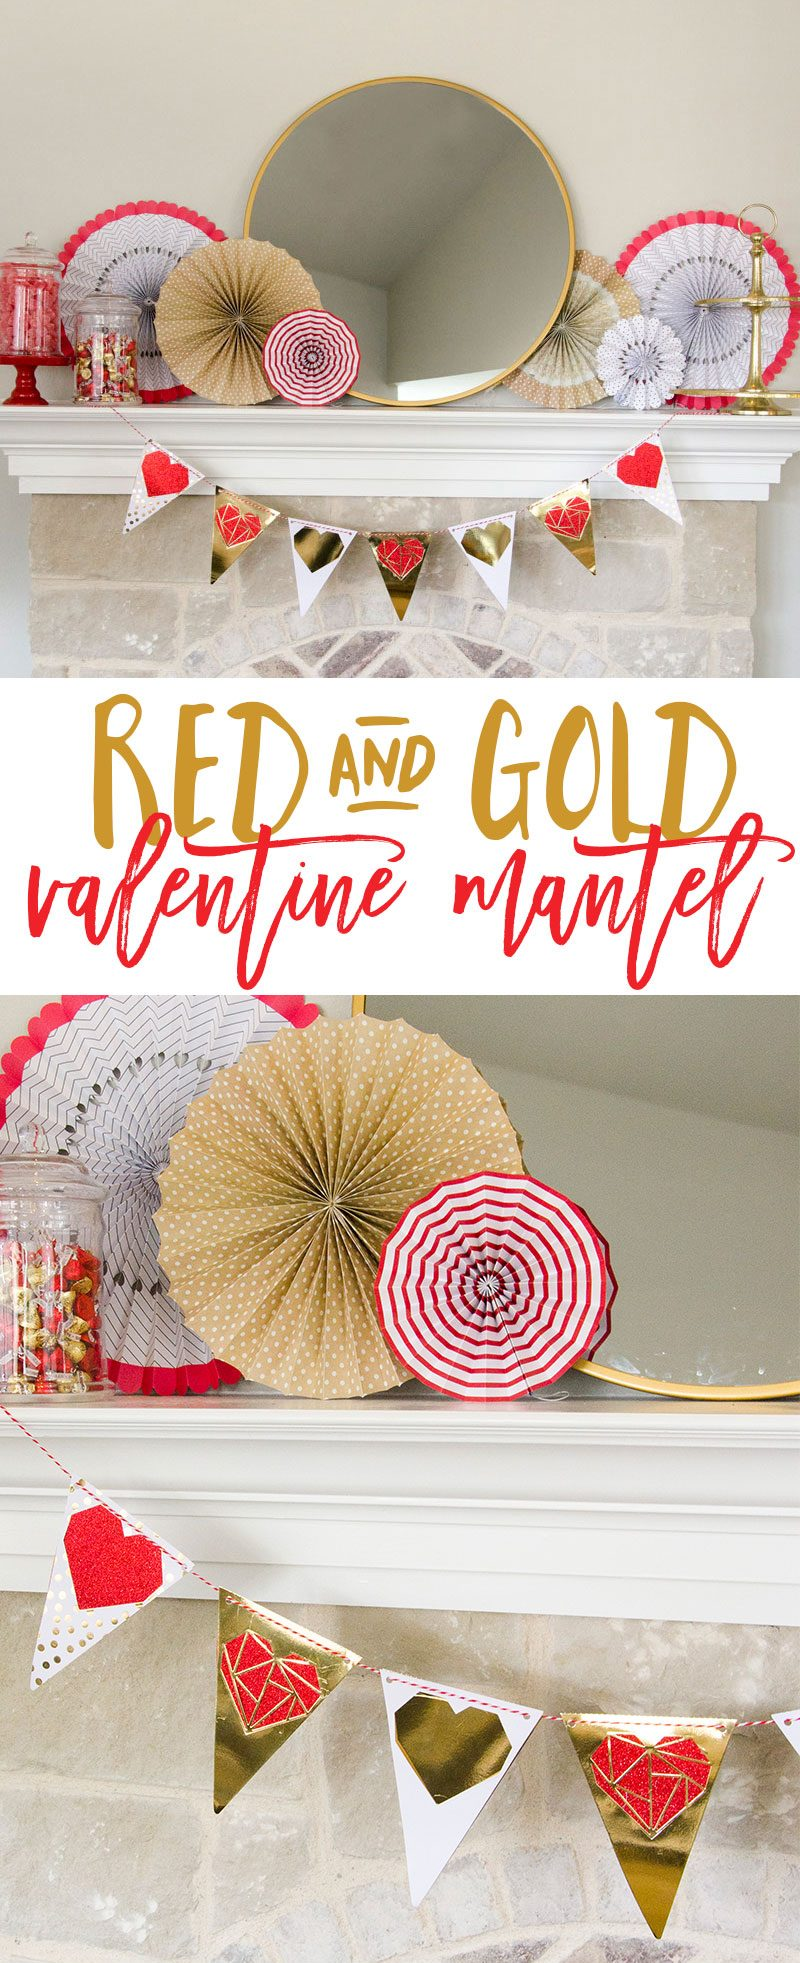 DIY Valentine's Day Decorations & Mantel Tutorial by Lindi Haws of Love The Day